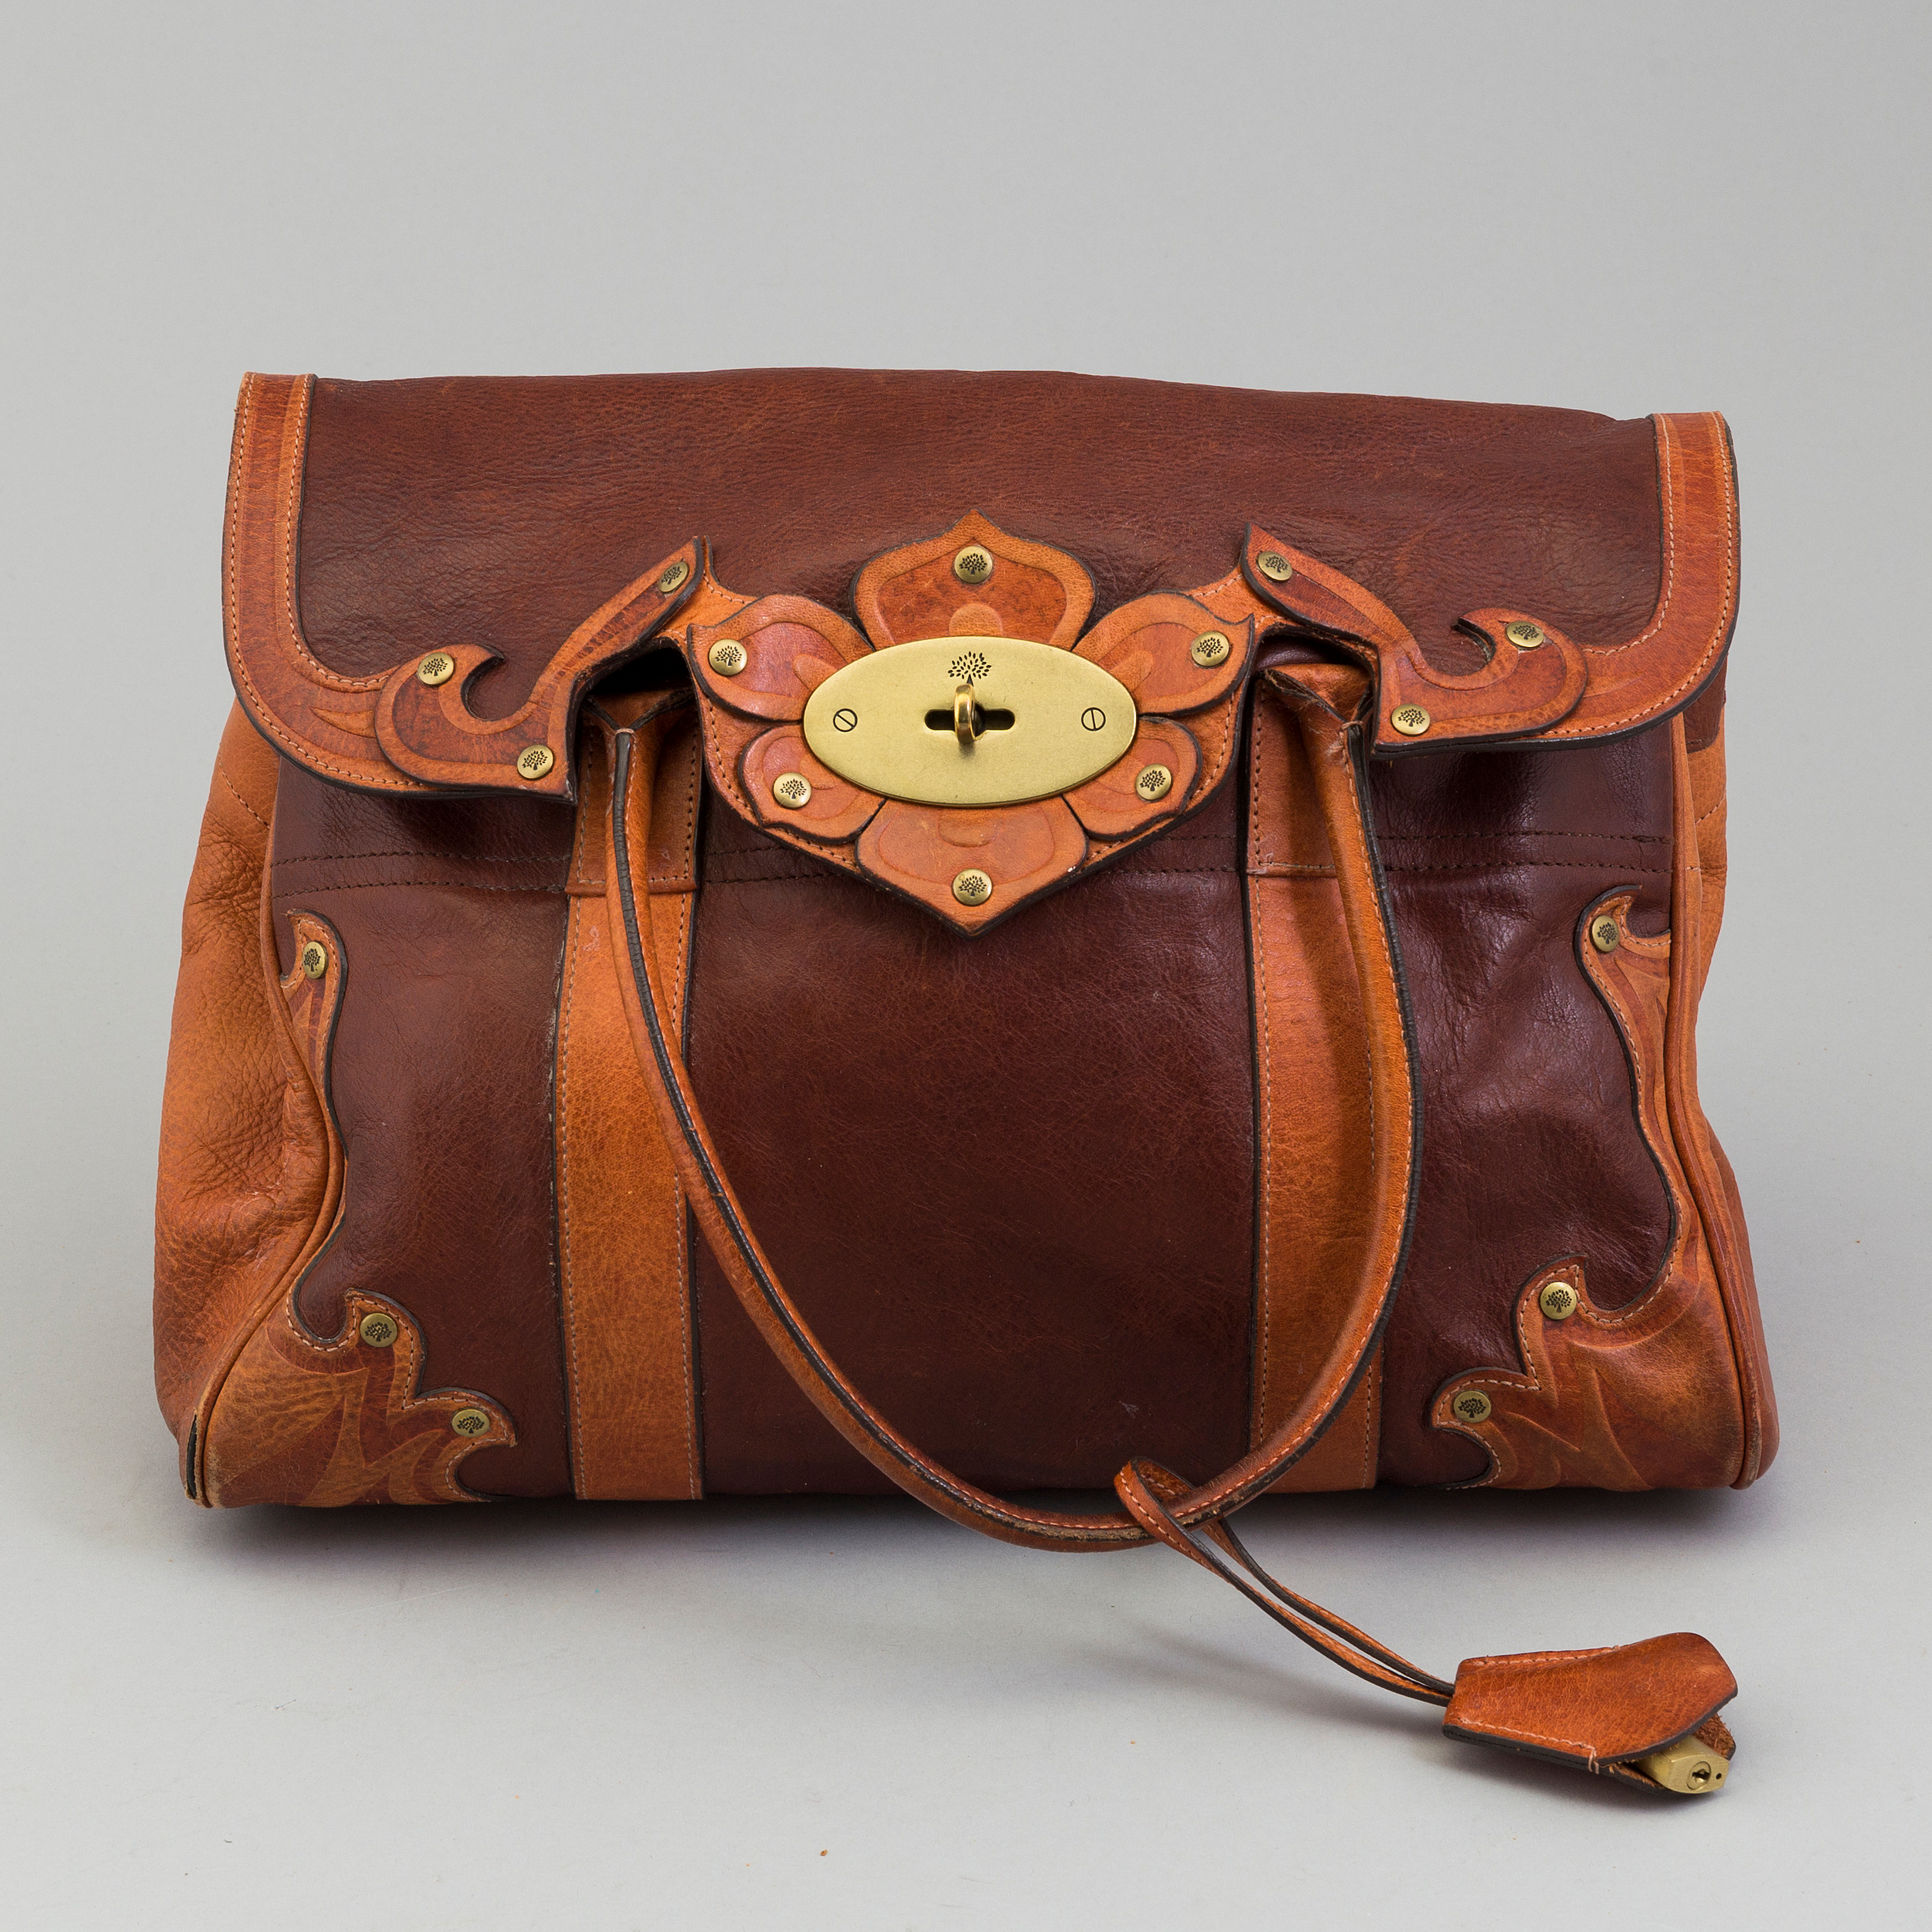 5ca6633c9cc ... sale mulberry a mulberry tooled bayswater limited edition handbag.  bukowskis 339d6 c48f4